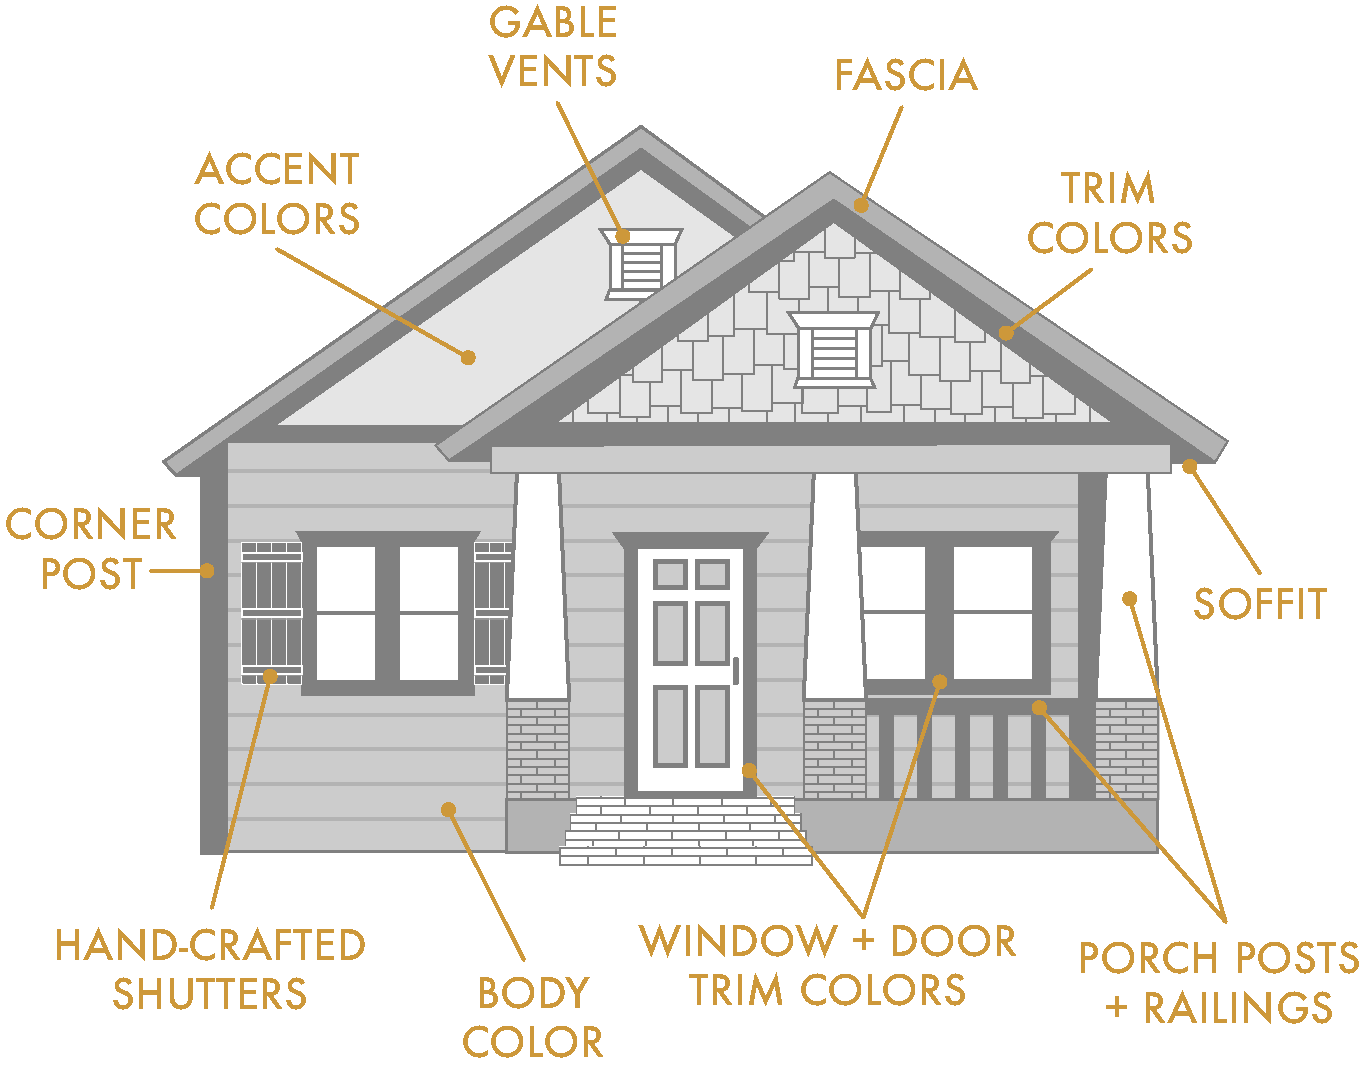 House Exterior Trim Diagram - Introduction To Electrical Wiring ...